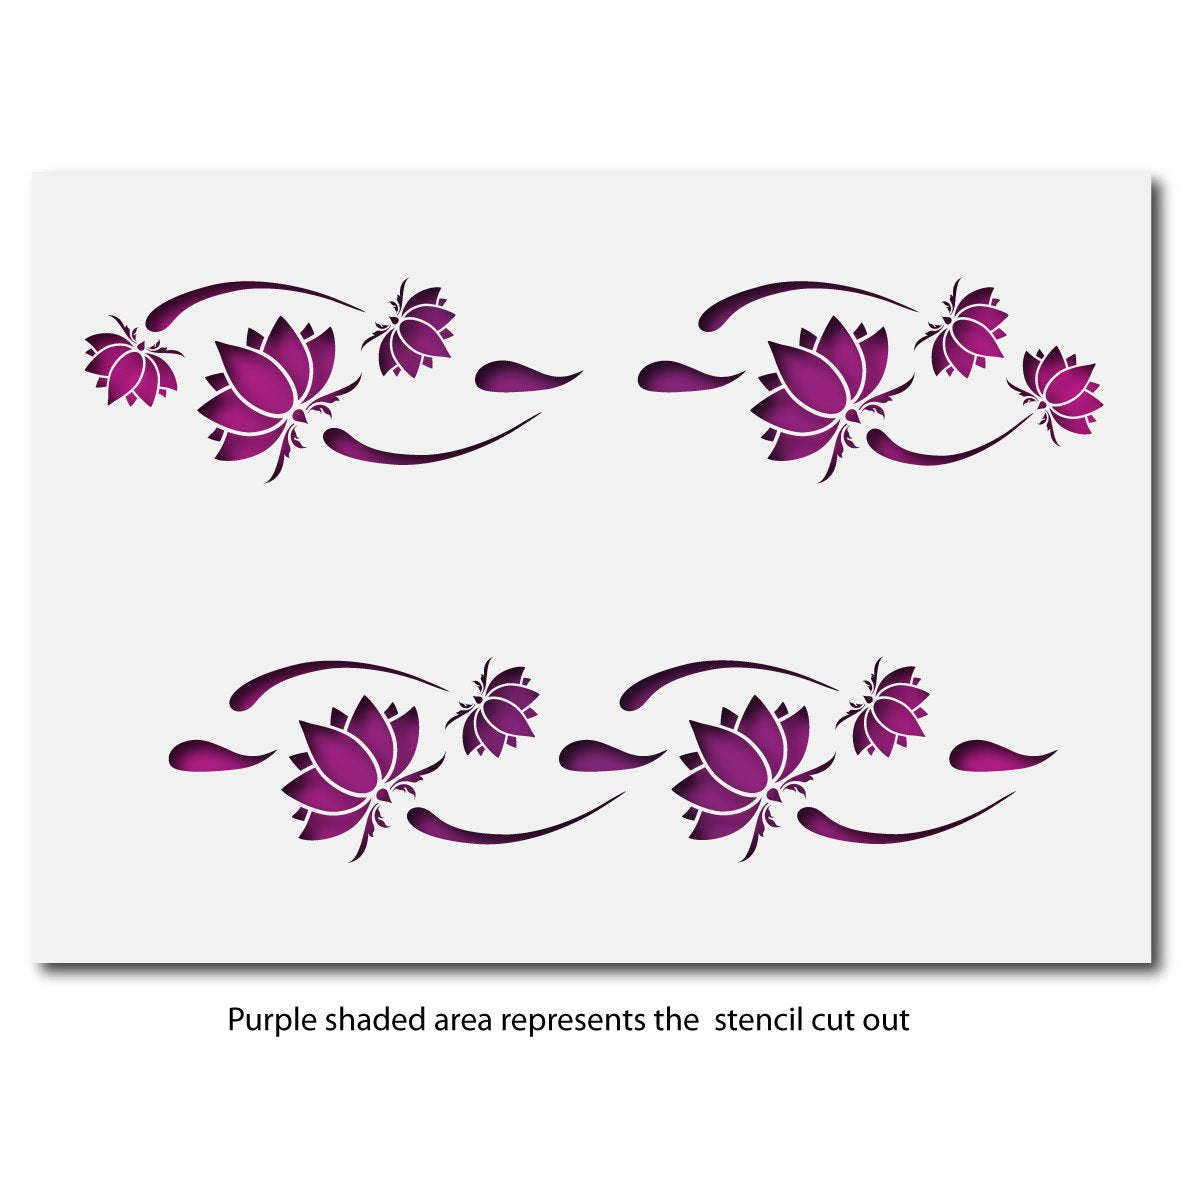 CraftStar Lotus Flower Border Stencil Layout